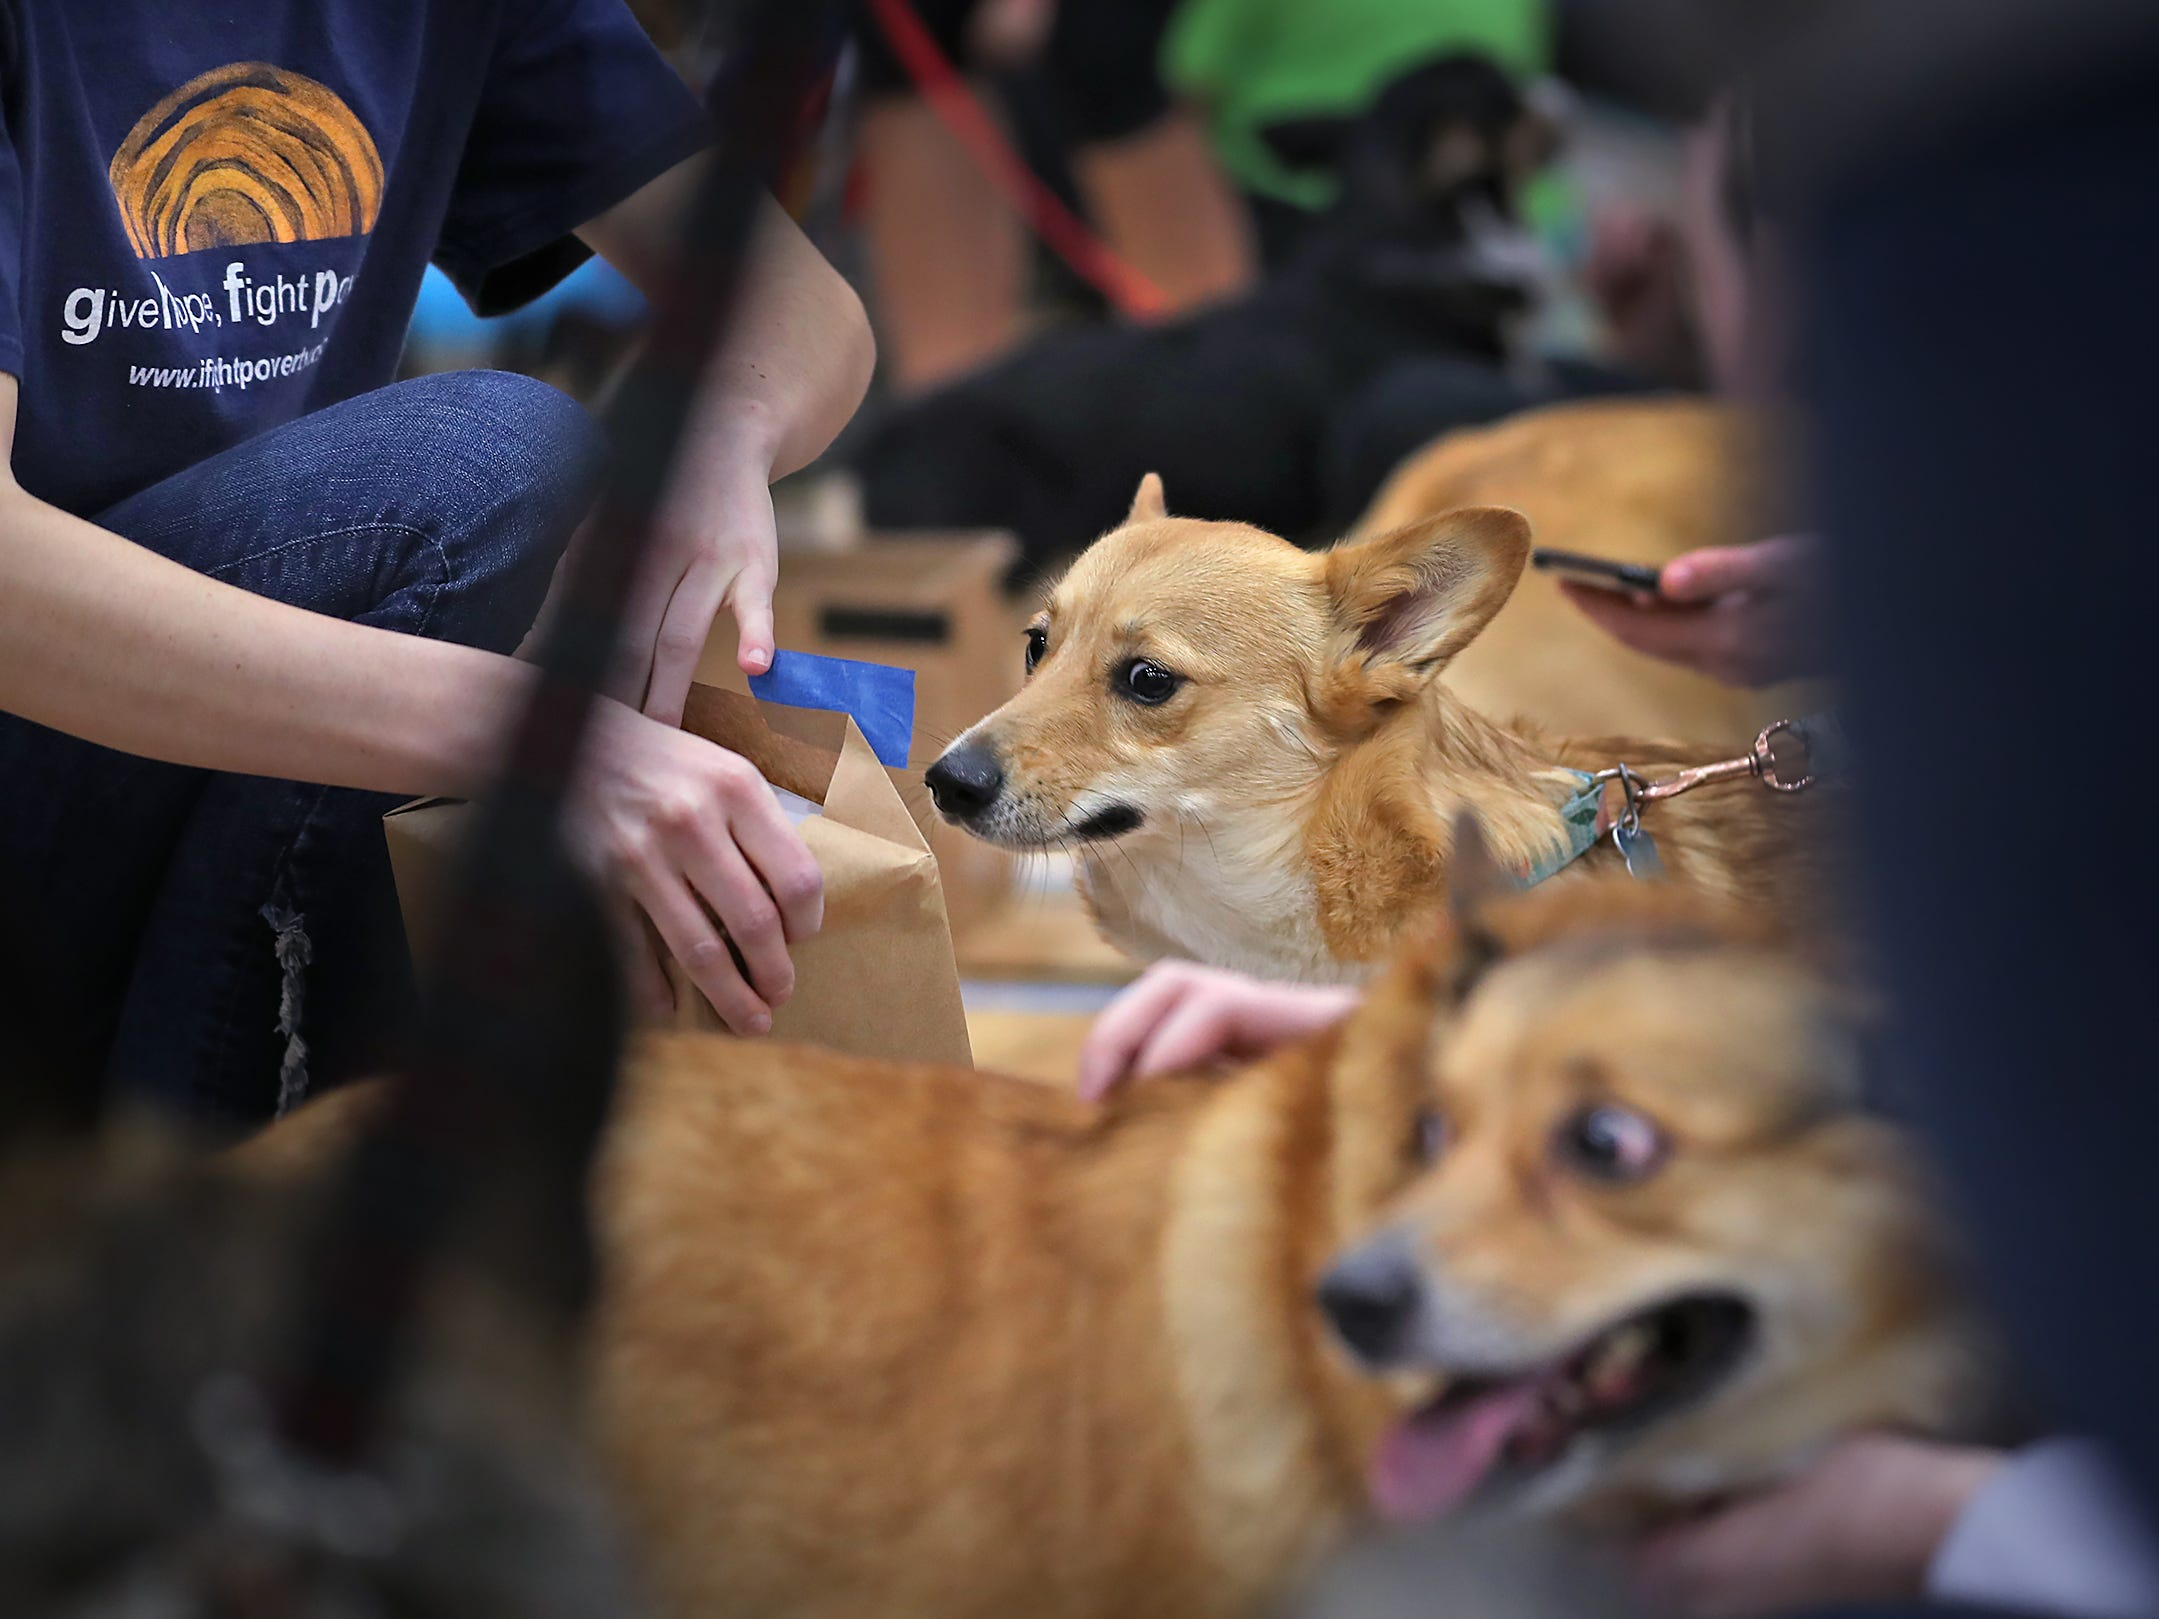 Murphy and other Corgis wait as people vote on their costume presentations at the Indianapolis Corgi Limbo & Costume Contest at IUPUI, Sunday, April 14, 2019.  The event benefits children orphaned by HIV/AIDS in eSwatini, Africa.  It is presented by the Give Hope, Fight Poverty IUPUI chapter.